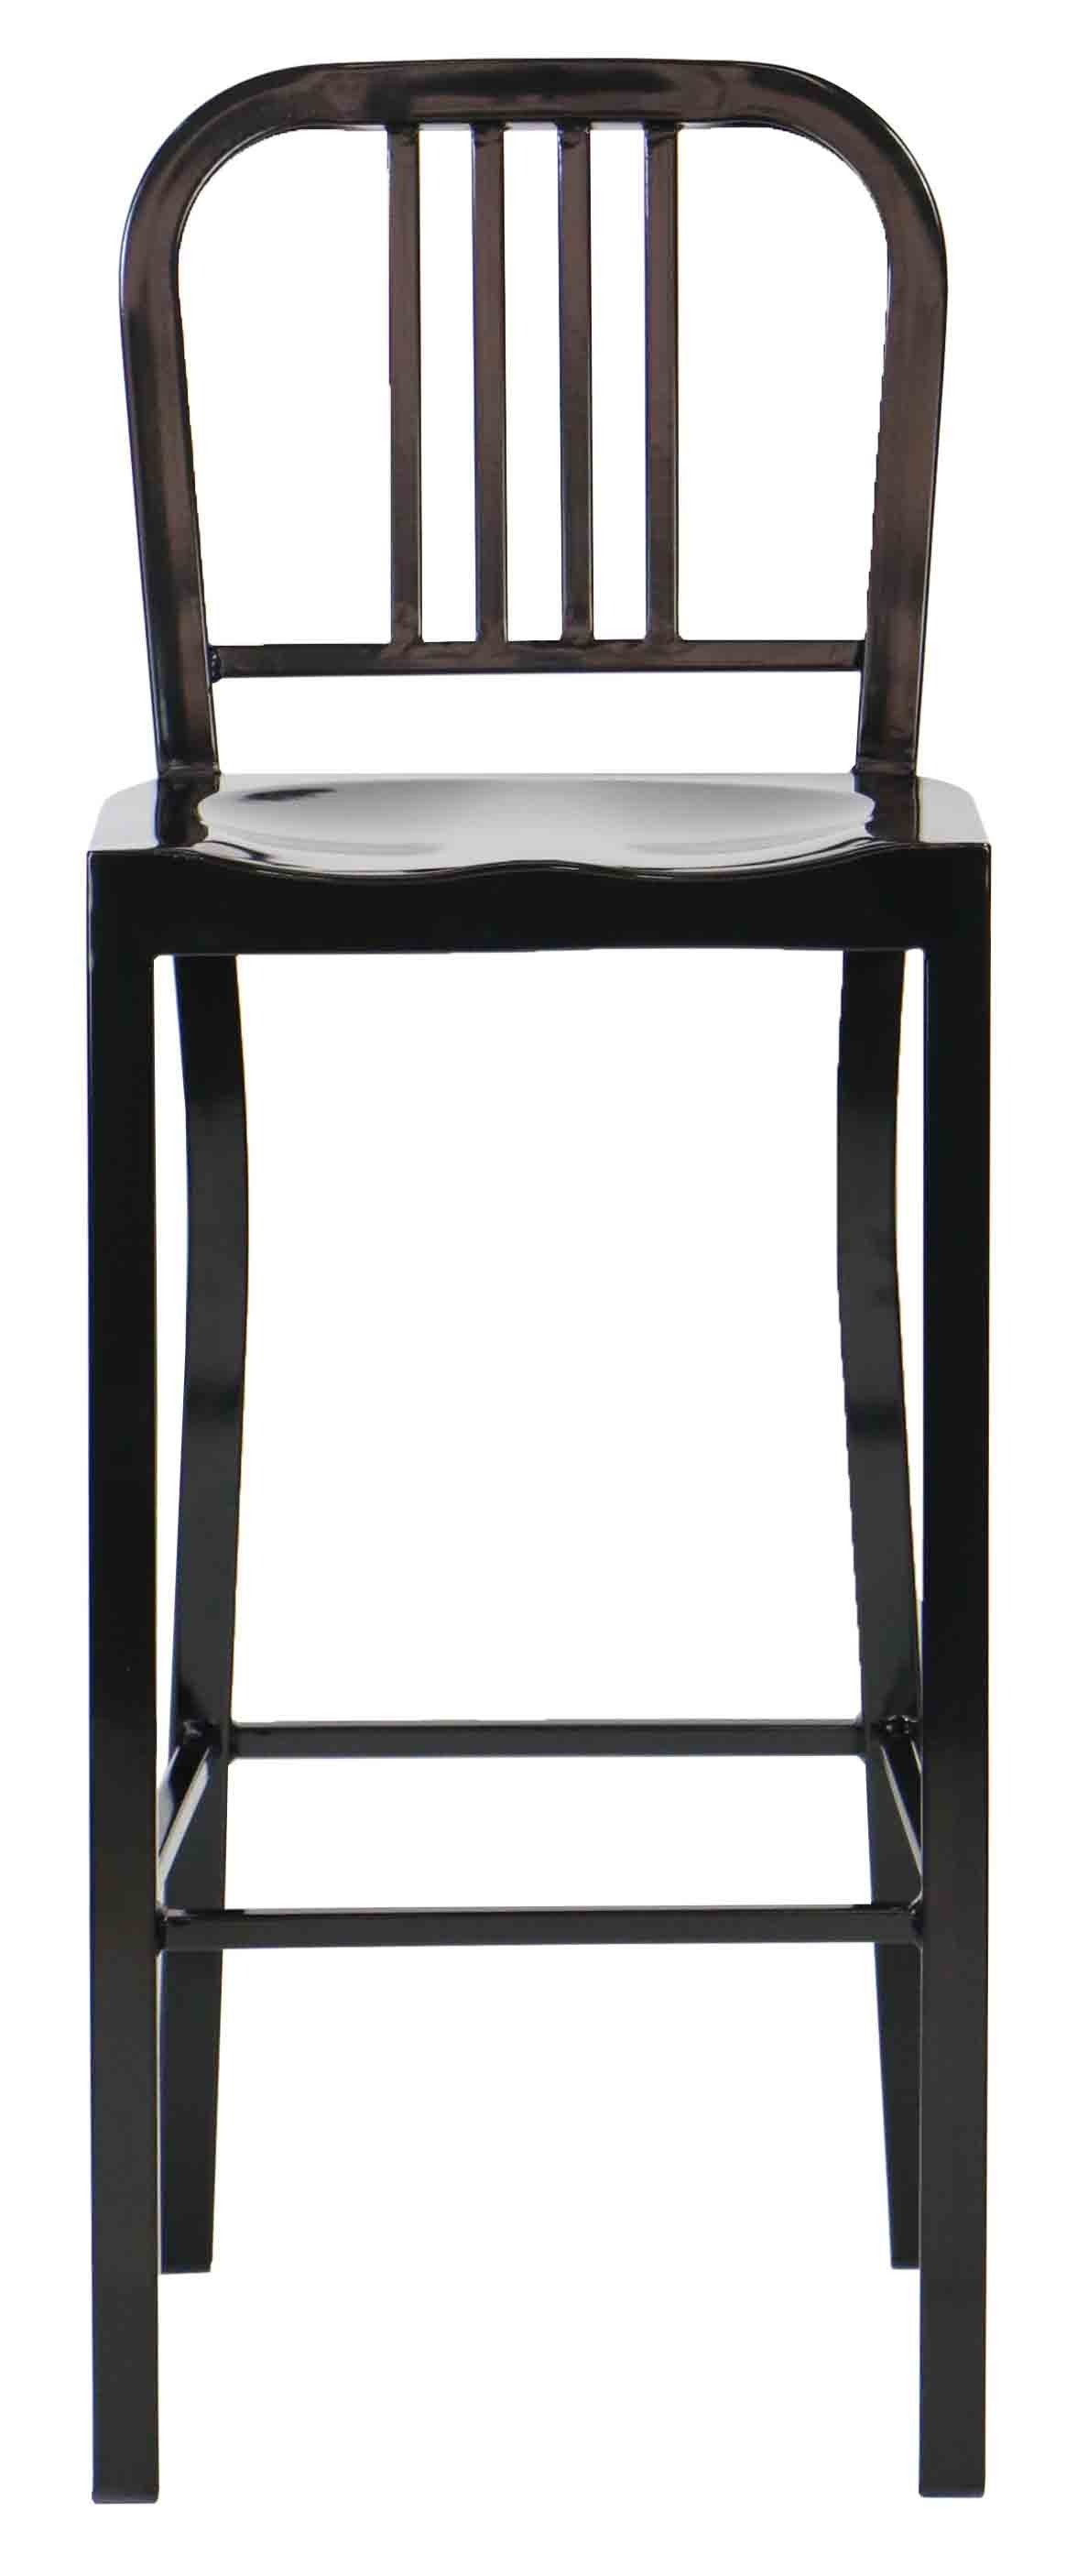 Navy Metal High Bar Stool Black Bar Stools Living Room Furniture Furniture Home D Cor